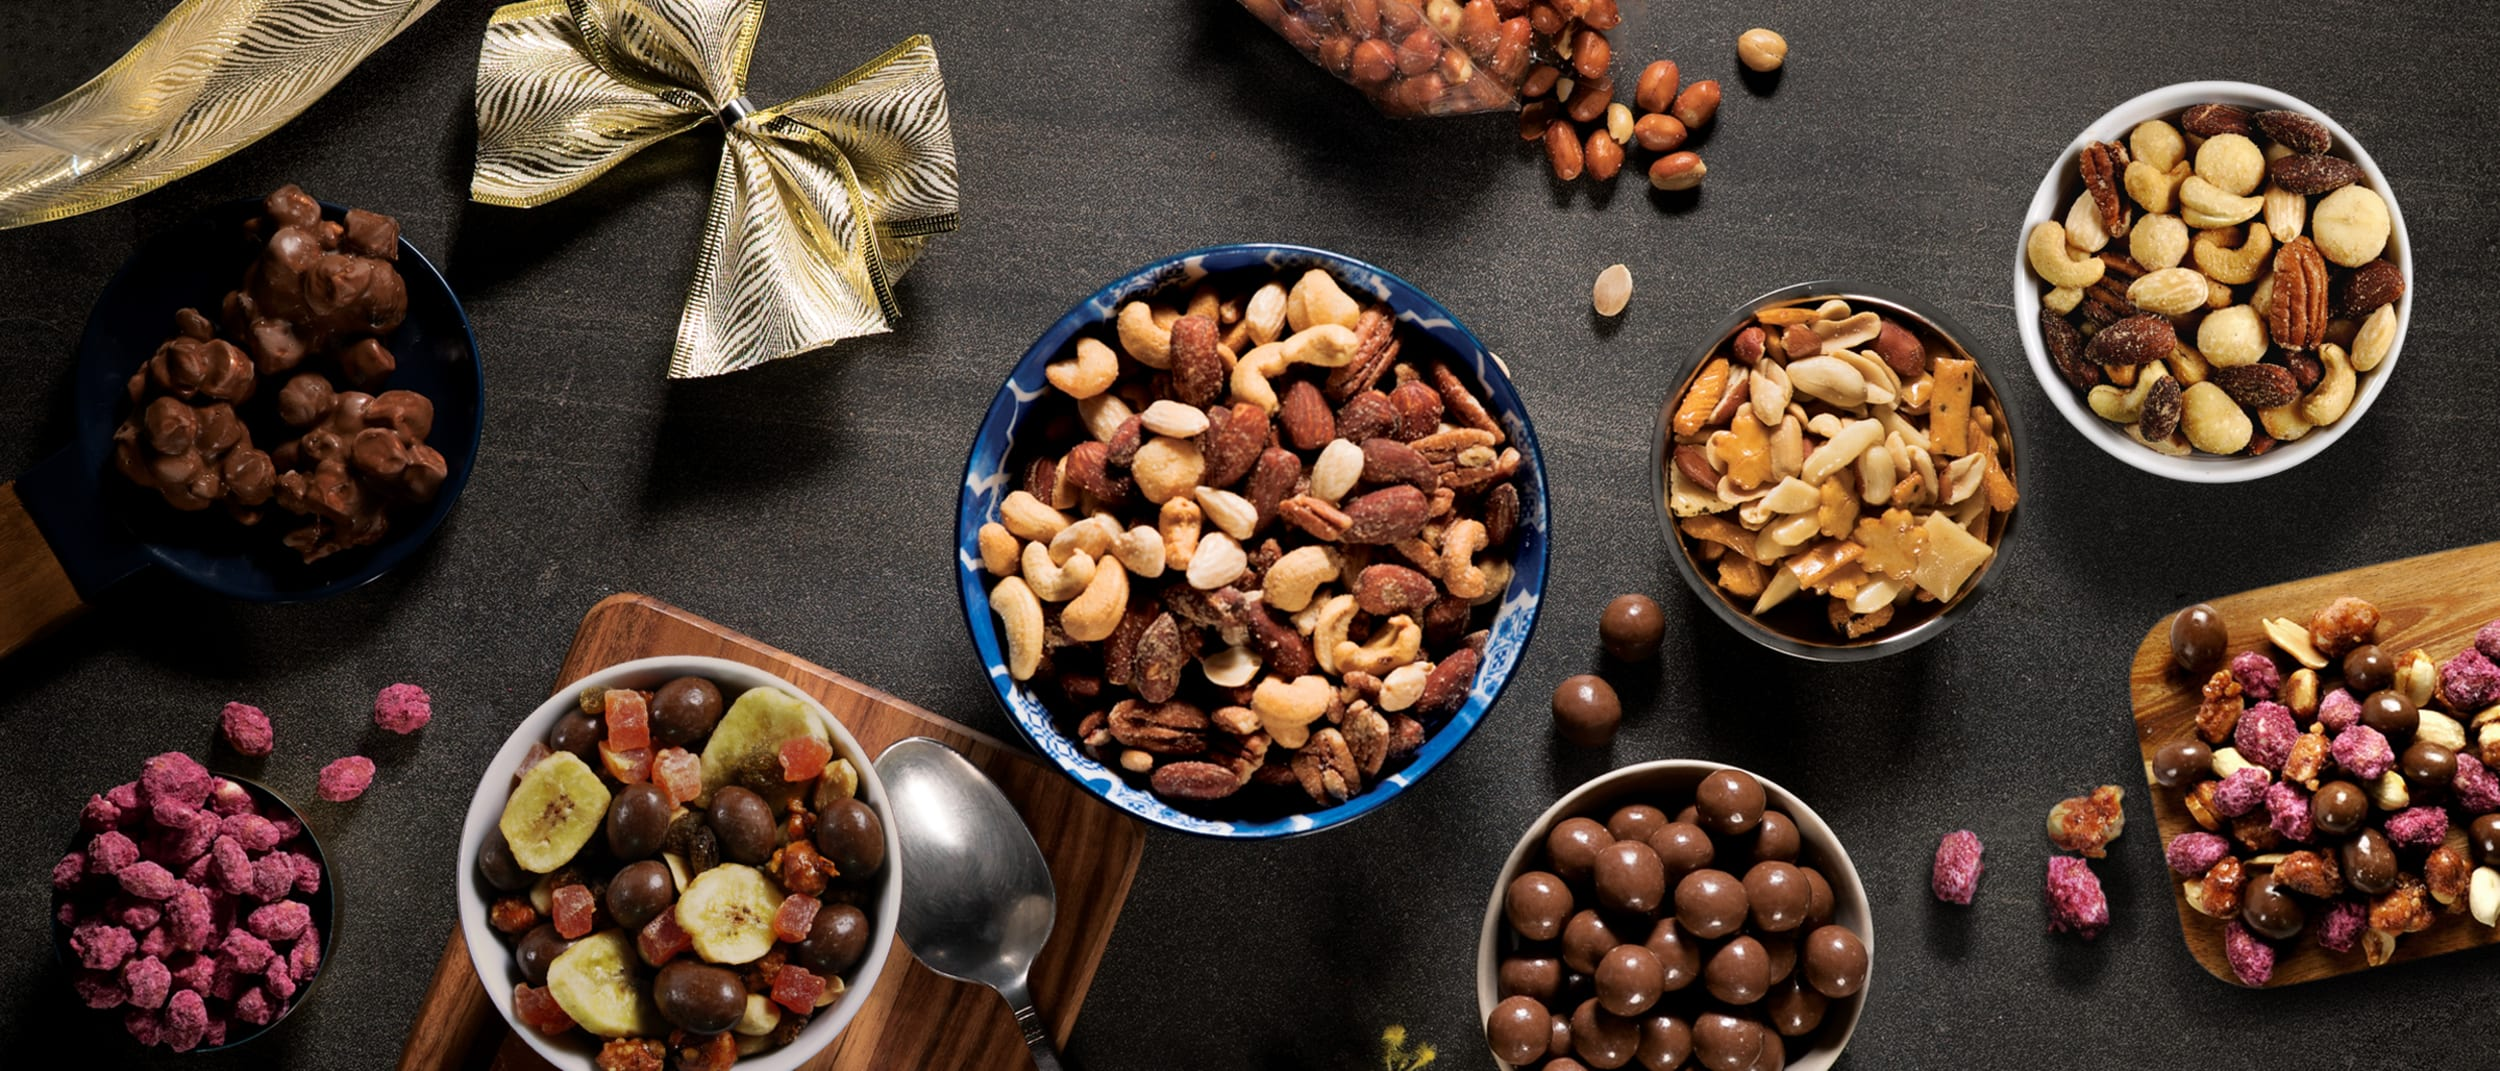 Happy Campers: Charlesworth Nut's Happy Trail Mix Bar